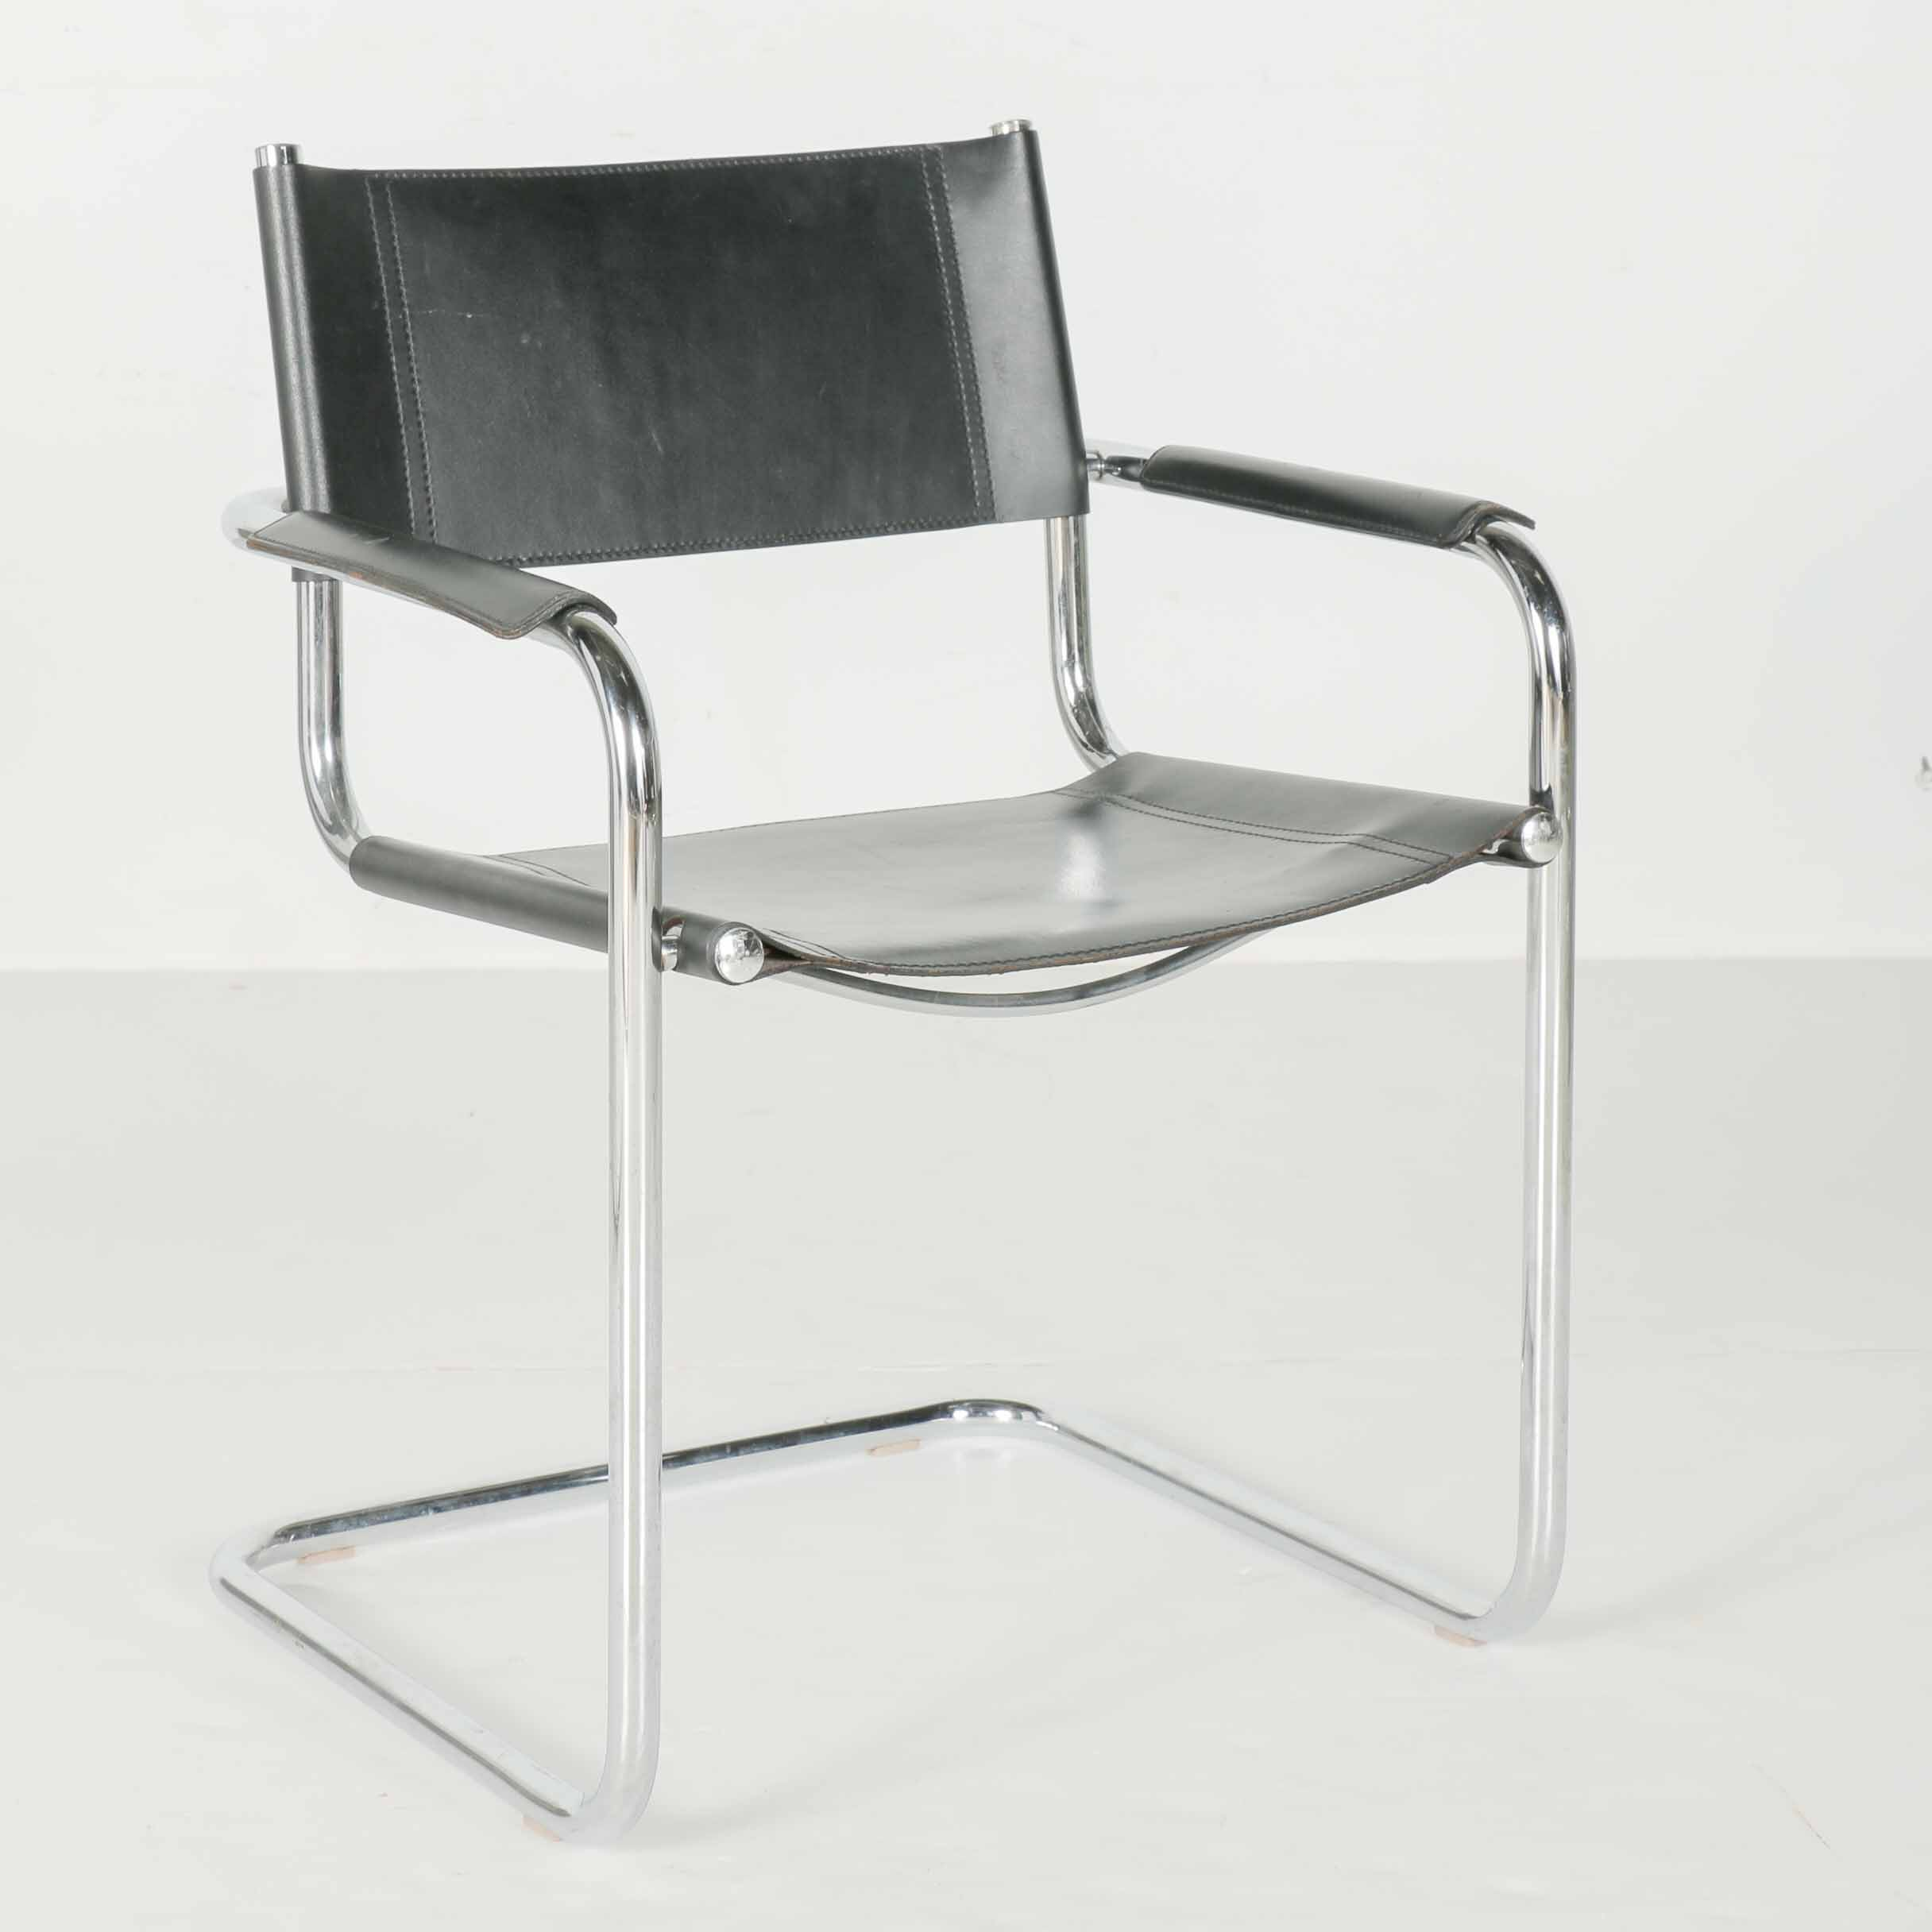 Loewnestein Oggo Mid Century Leather and Chrome Chair